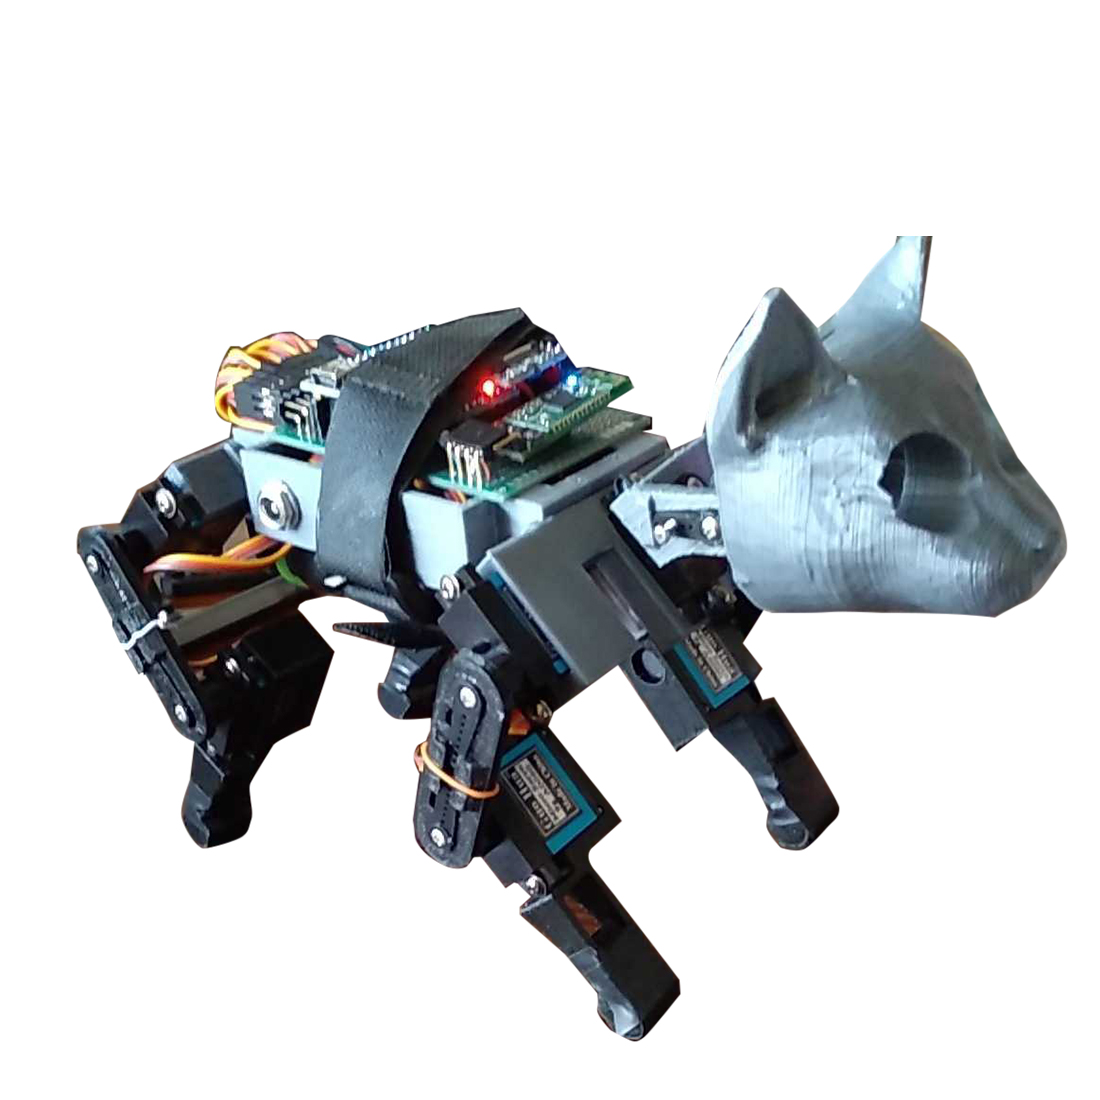 Programmable Mechanical Dog 11DOF Bionic Quadruped Crawling Robot Toy